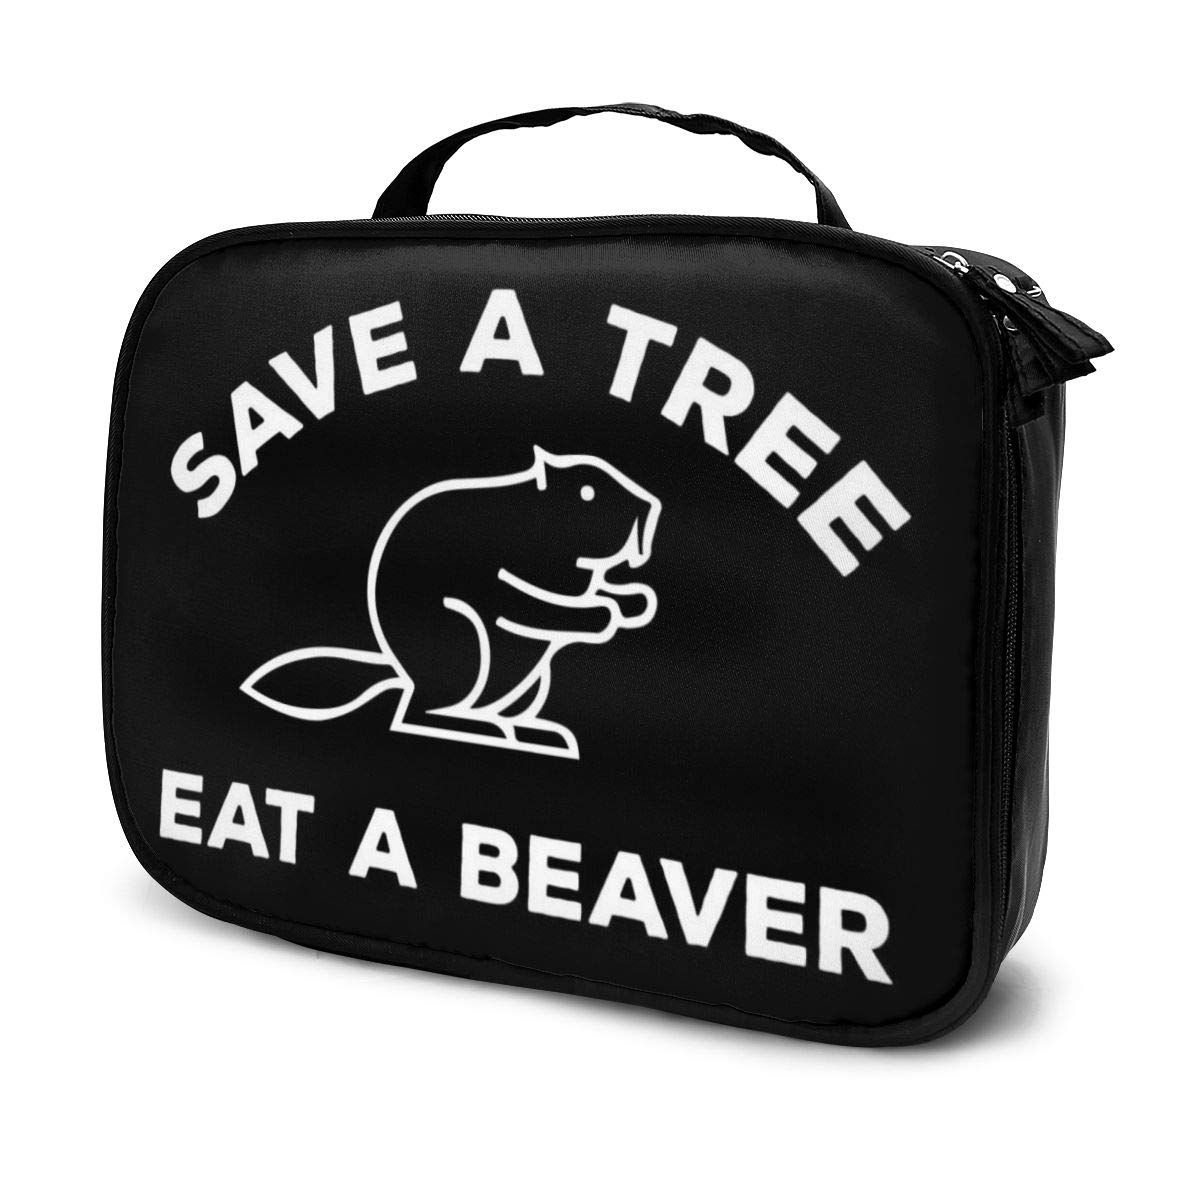 Multi-Functional Bag With Compartments Save A Tree Eat A Beaver Professional Cosmetic Pouch Travel Kit Makeup Boxes Makeup Bag